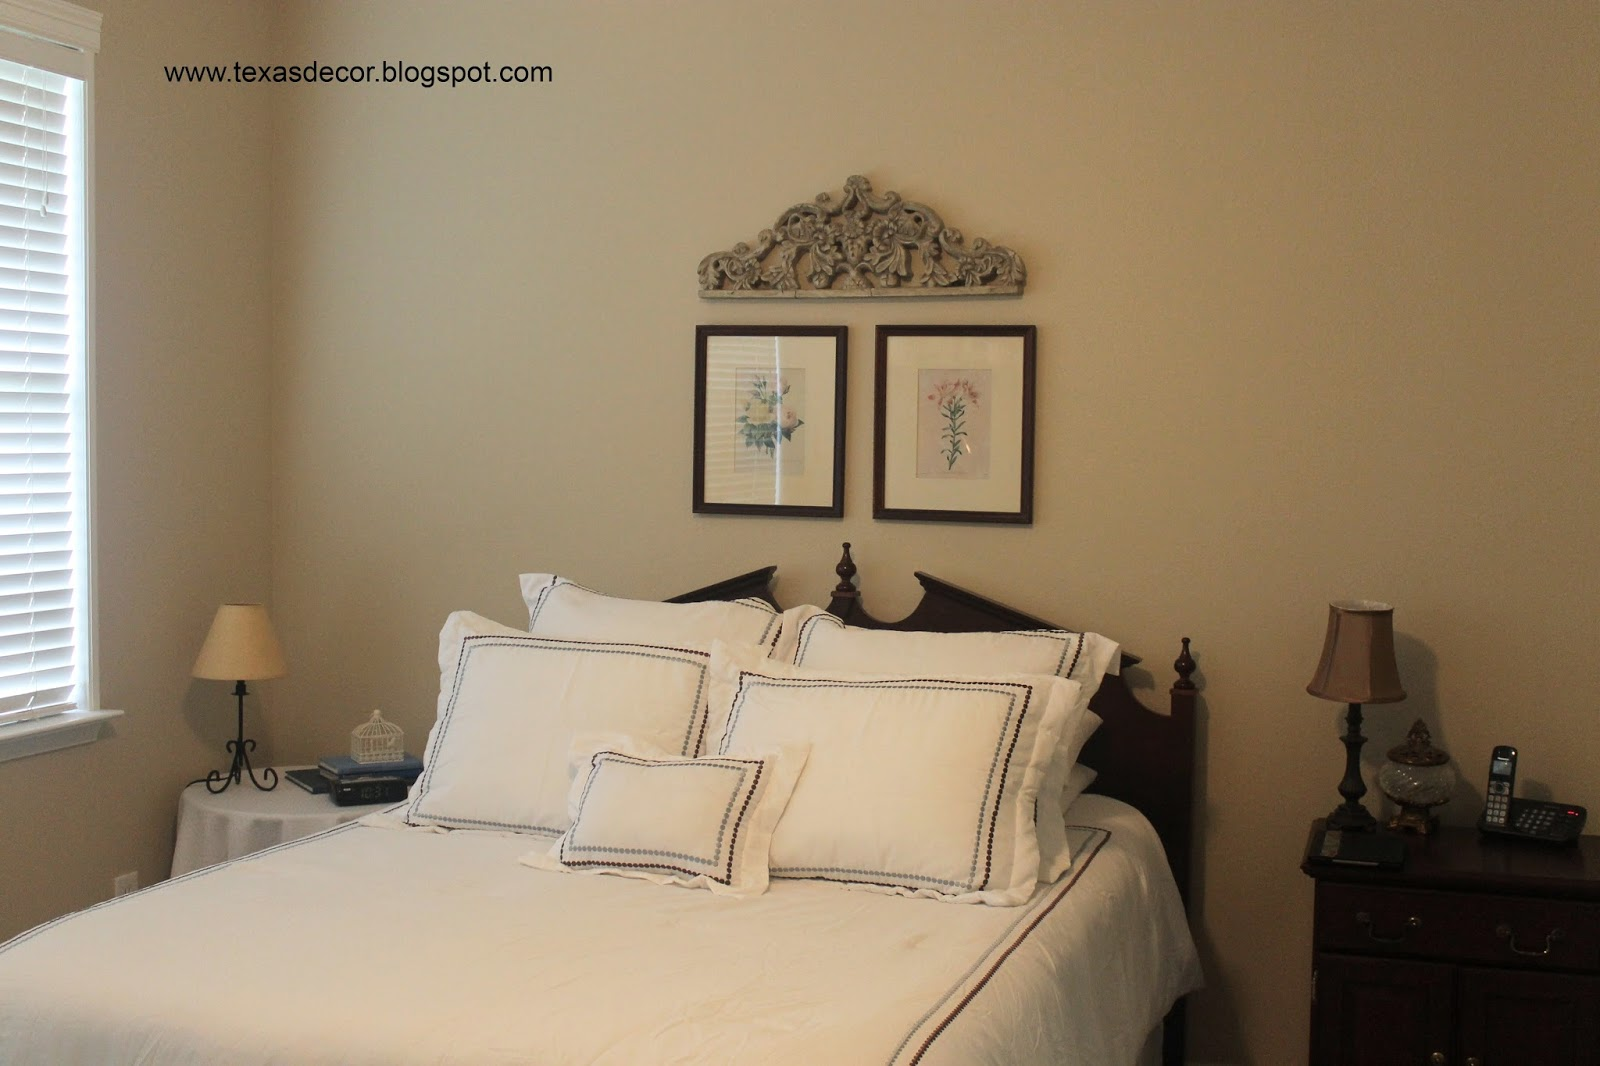 Texas Decor Quick Master Bedroom Update Painting Picture Frames